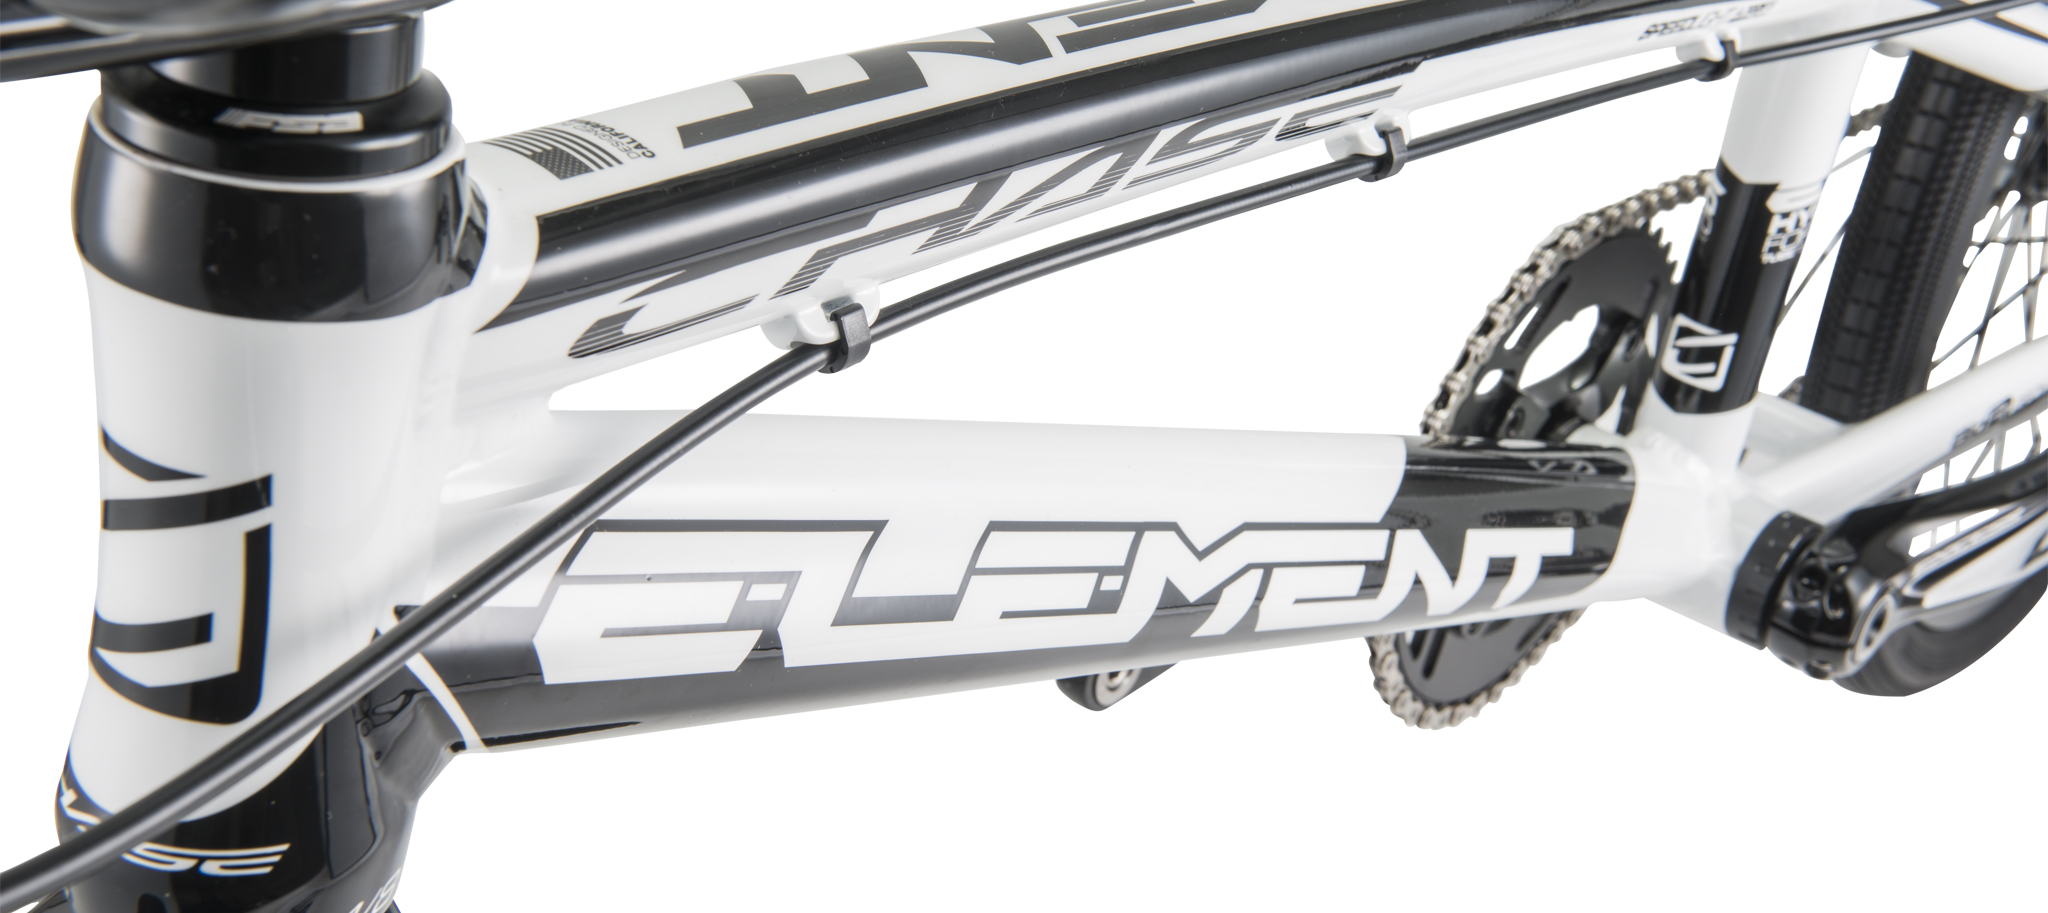 The 2018 Chase Element Bikes are now in stock!